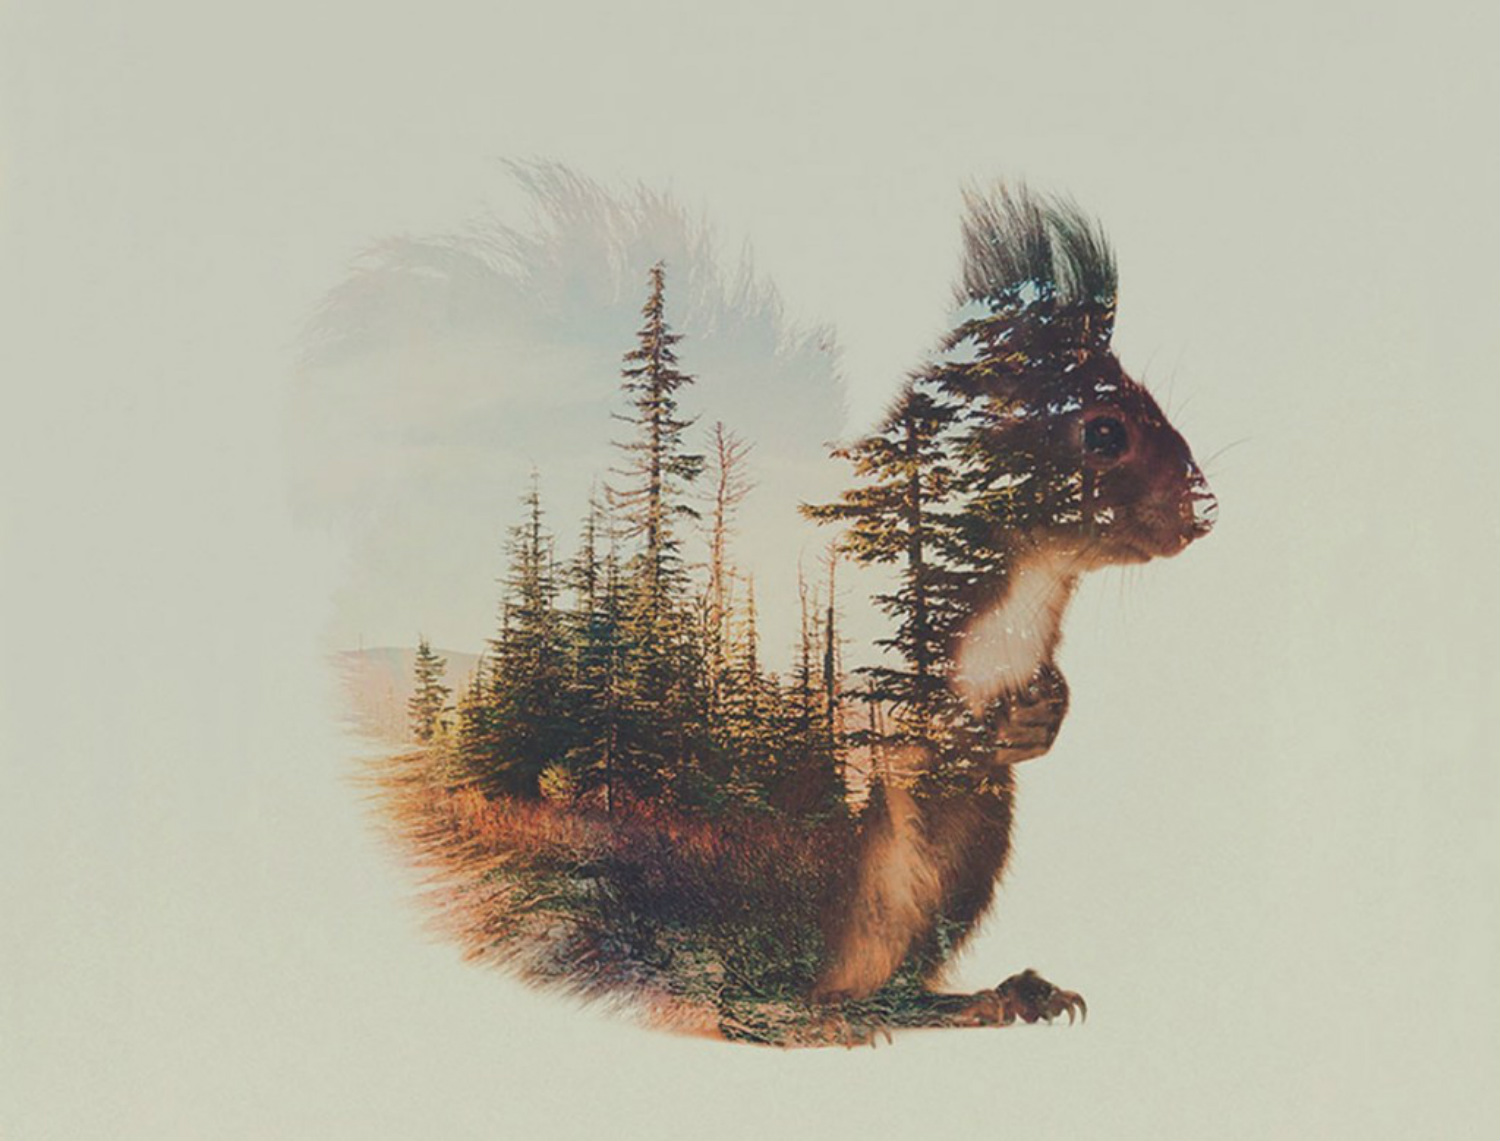 andreas lie double exposure animals squirrel